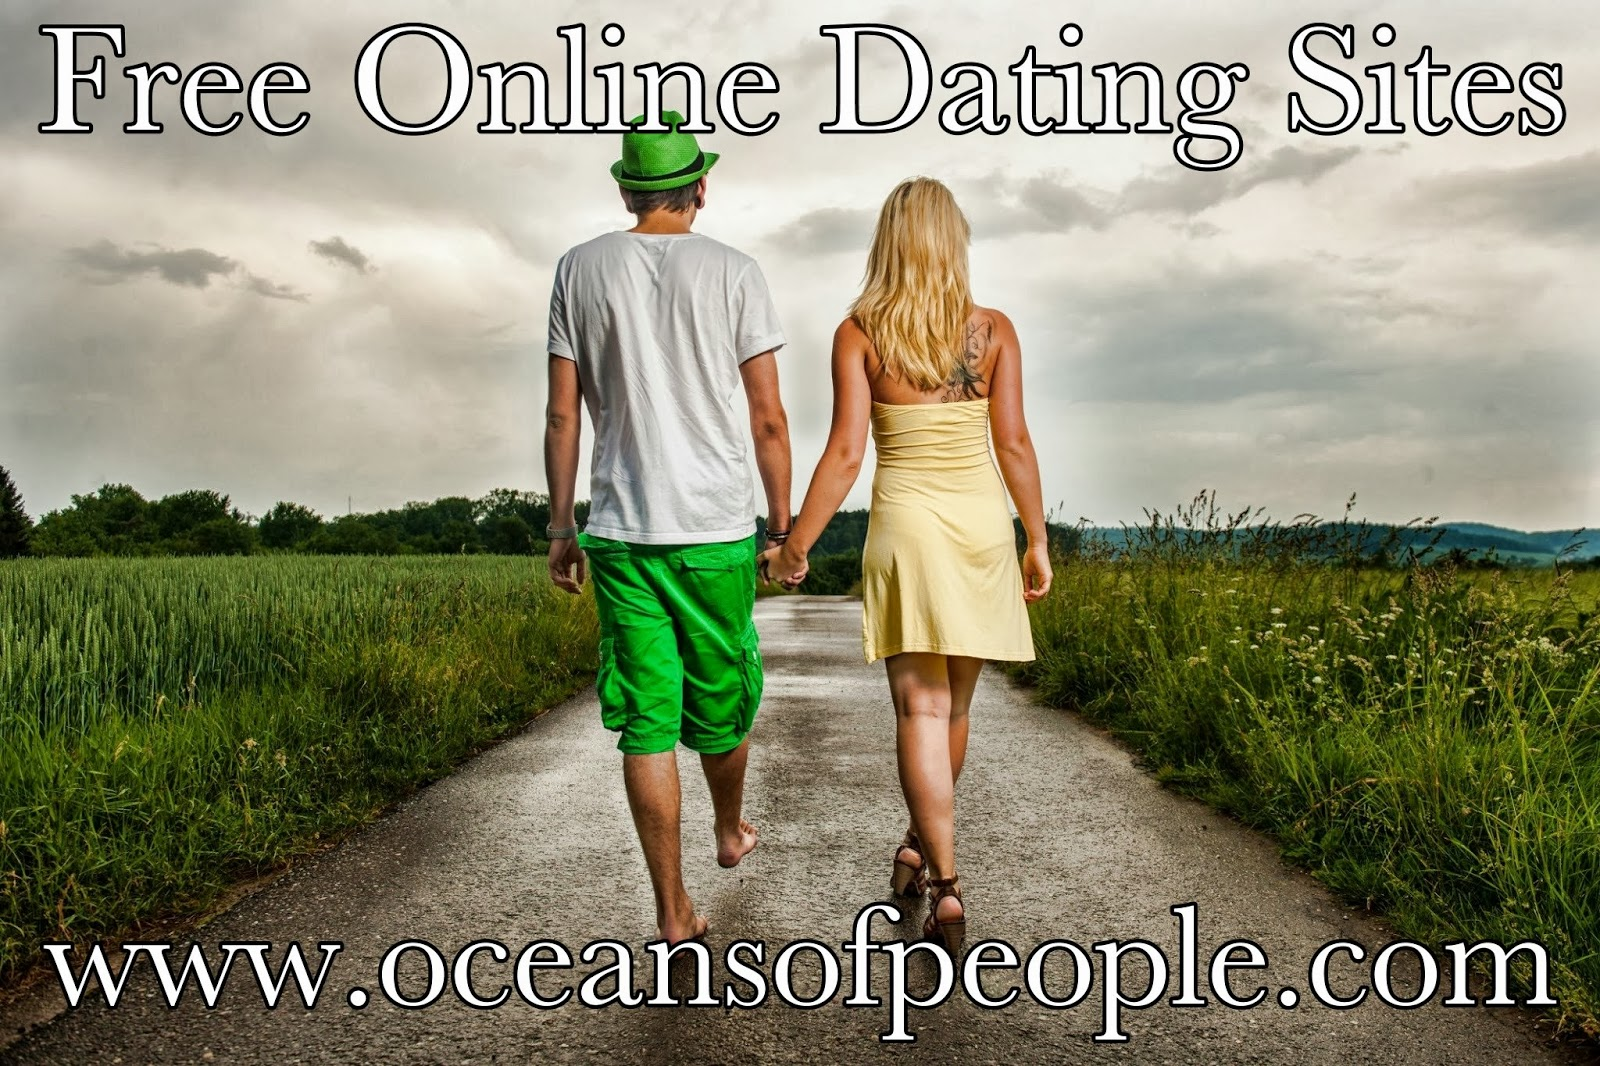 Tennis dating sites free